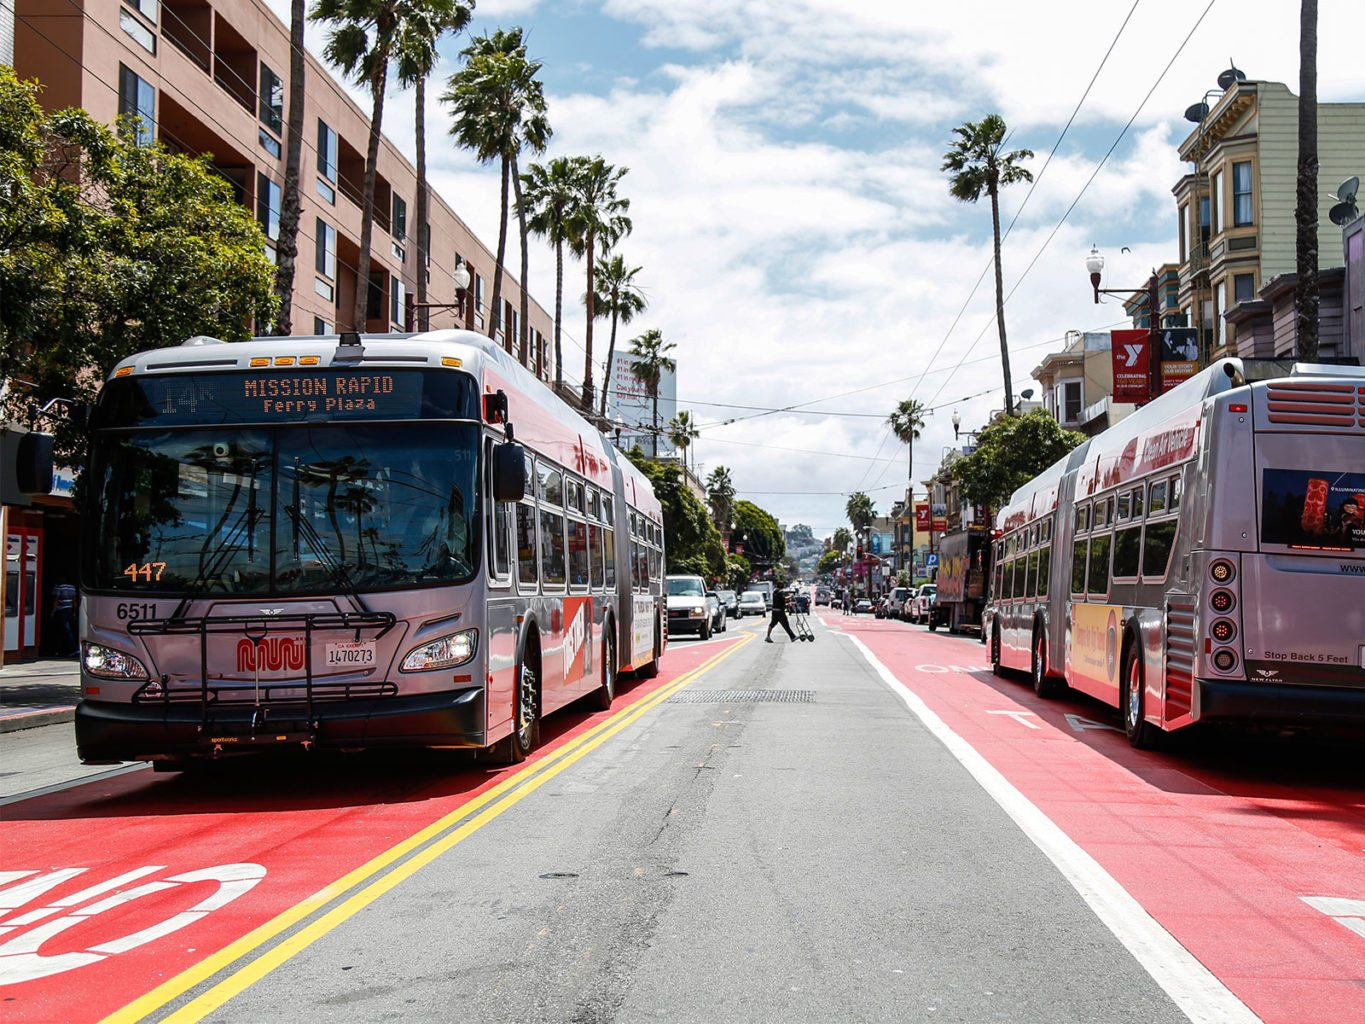 The SFMTA plans to replicate its red transit-only lanes, which currently exist in the Mission (pictured), on 50 streets across The City, including West Portal Avenue. (Emma Chiang/2016 Special to S.F. Examiner)